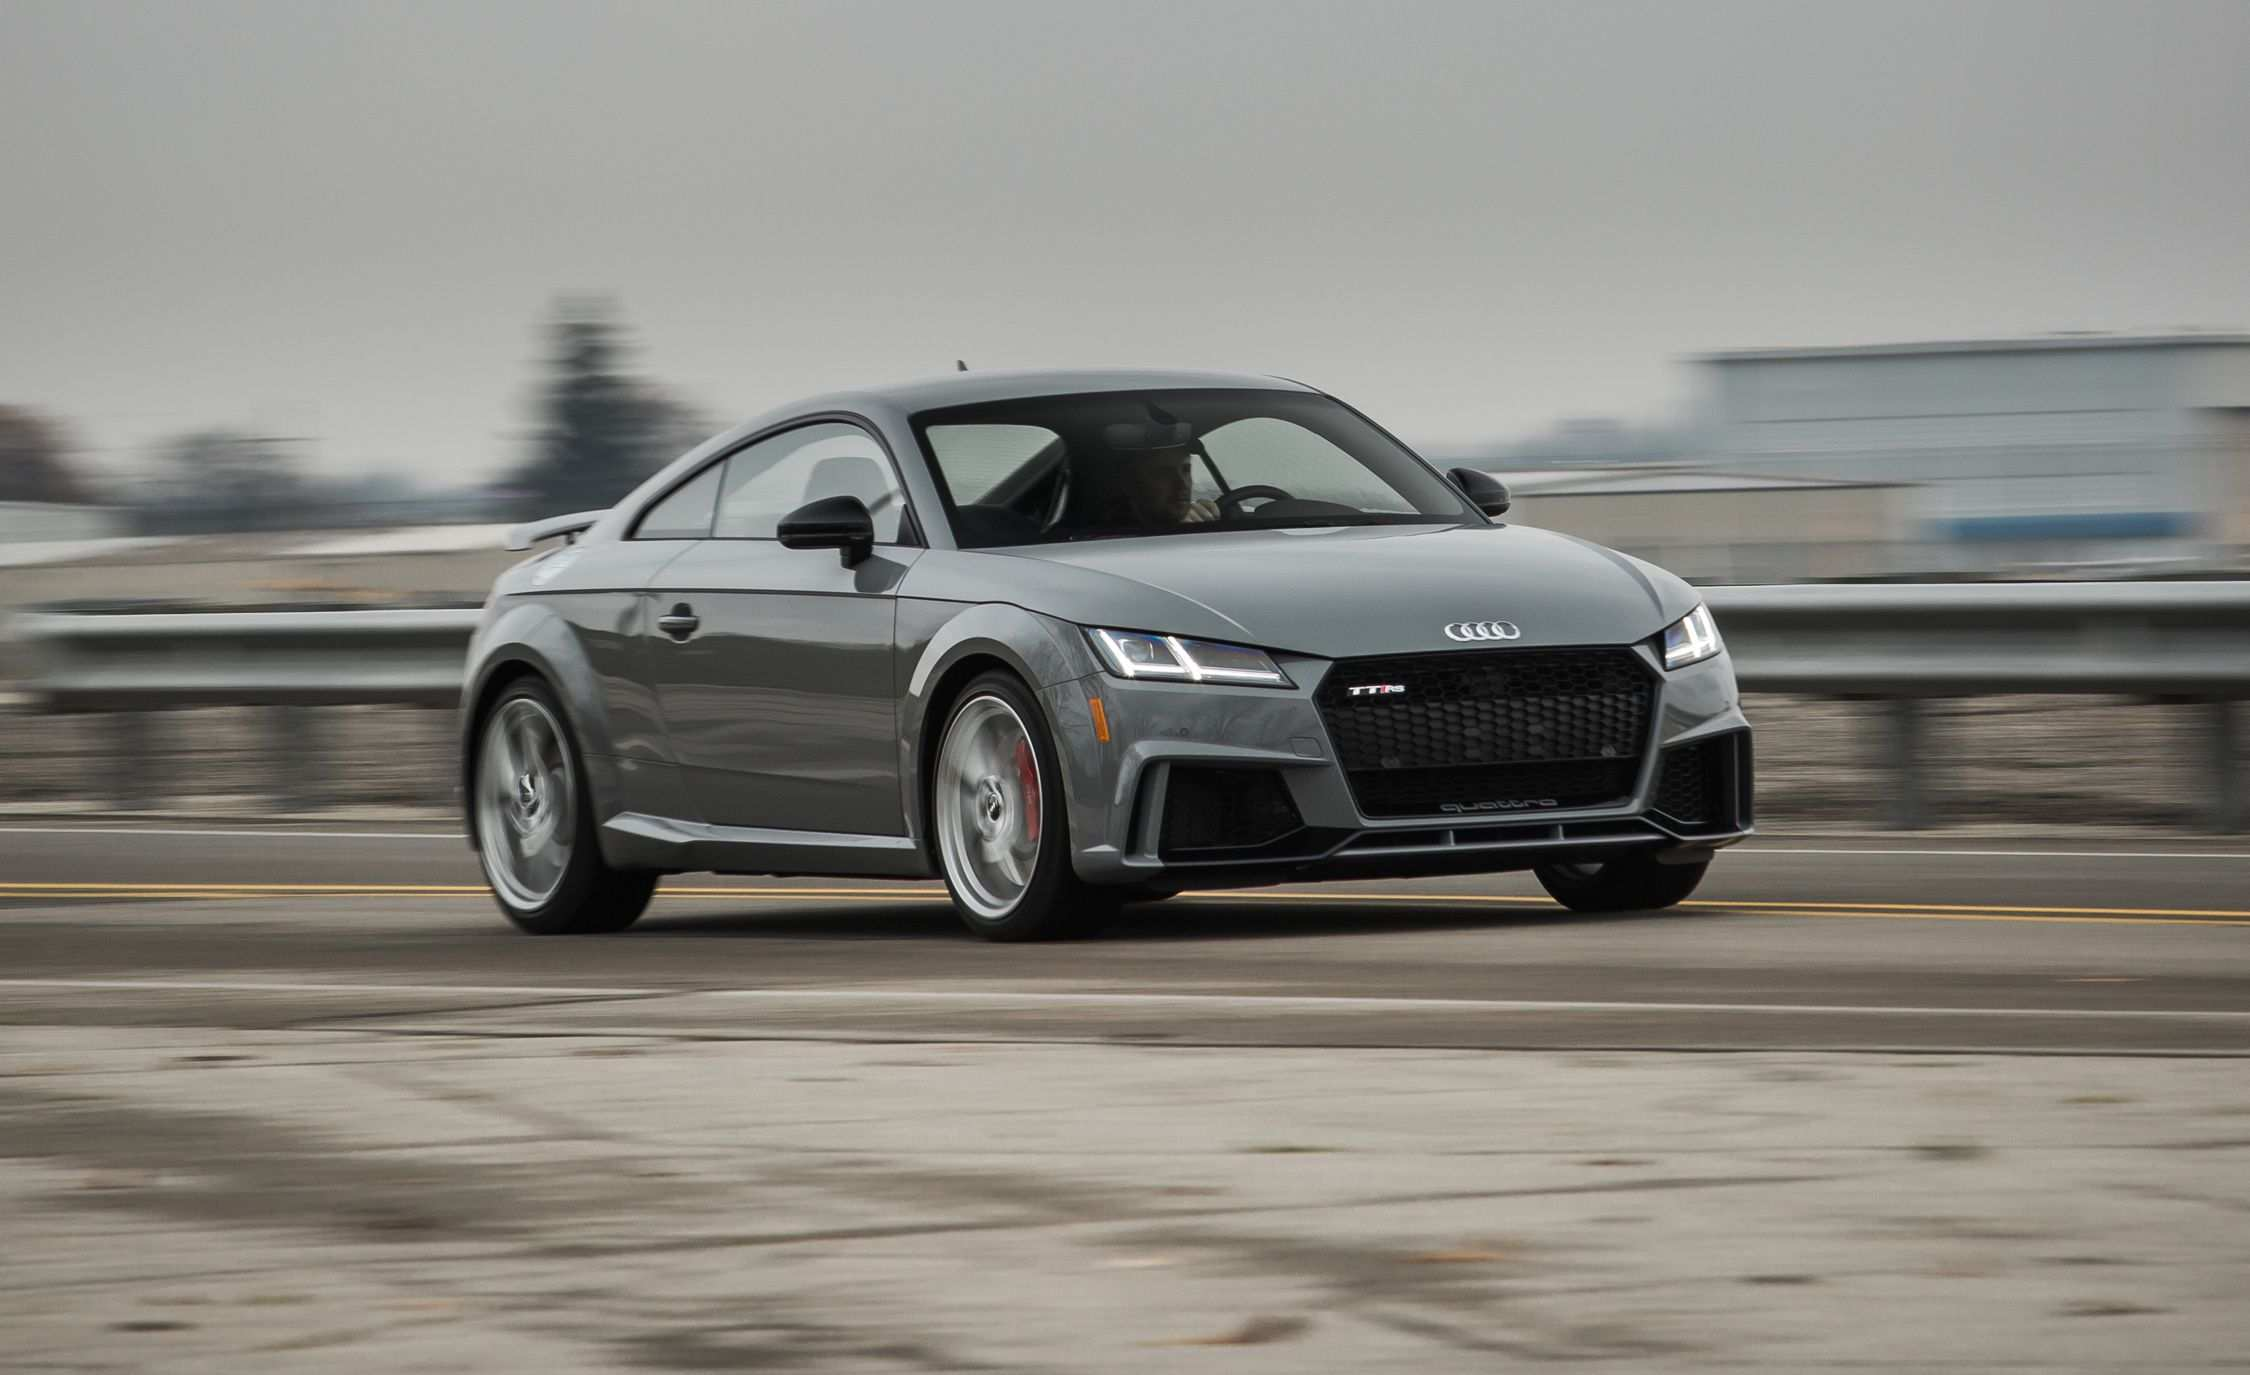 22 Best Review New Audi Tt Rs Plus 2019 Price And Review Review with New Audi Tt Rs Plus 2019 Price And Review